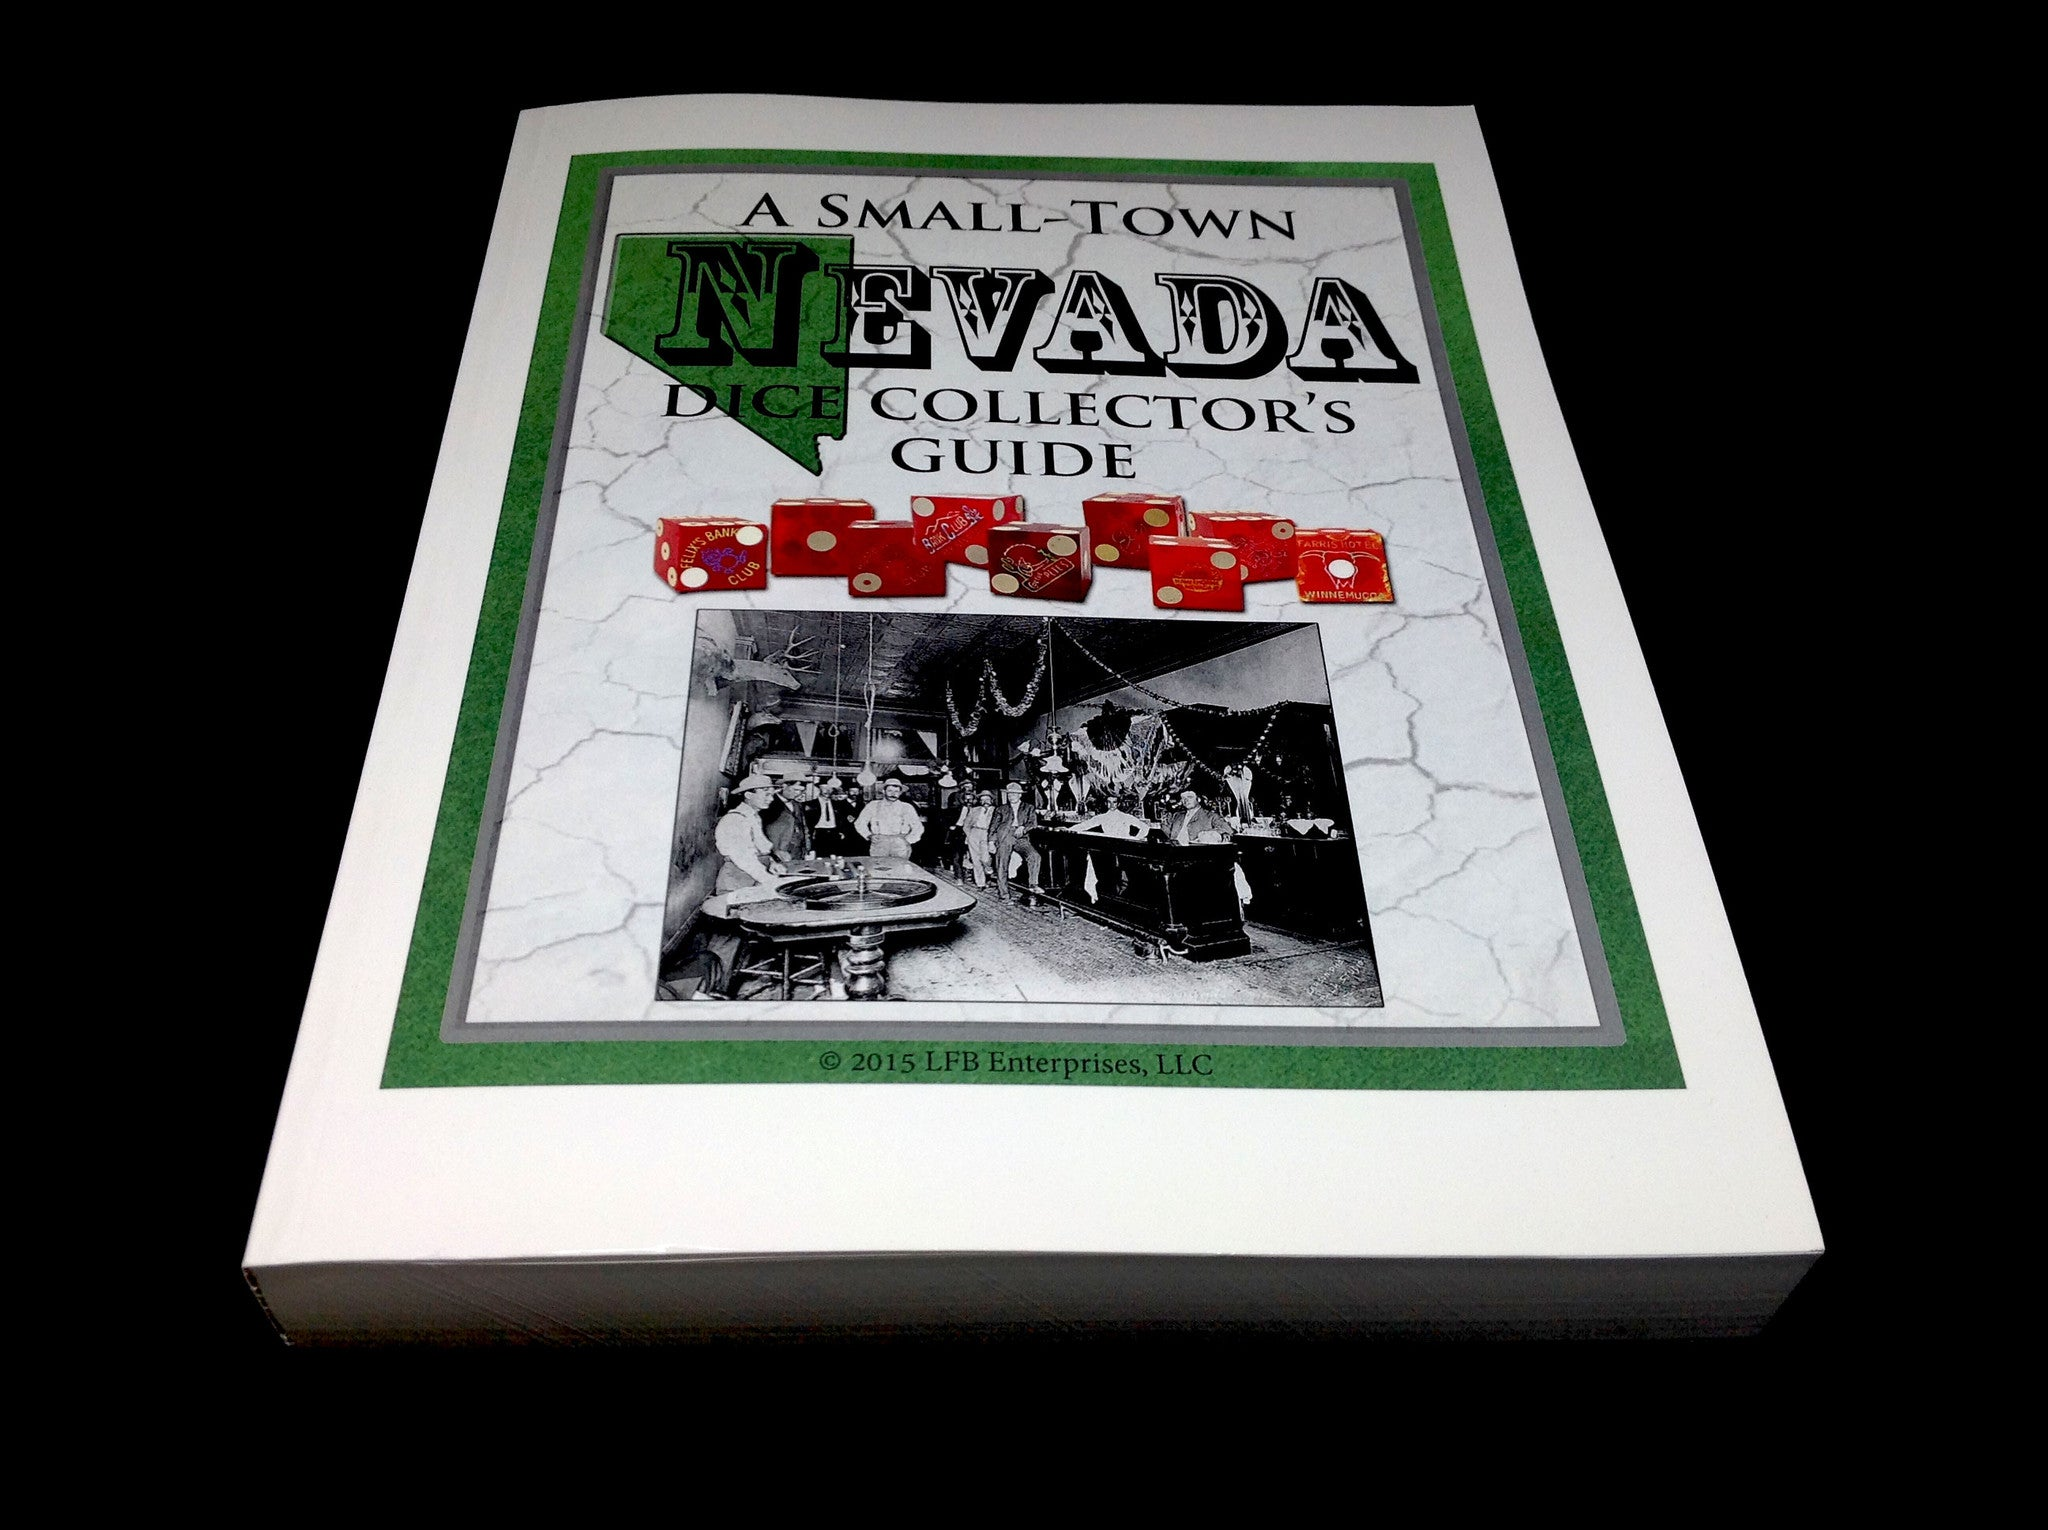 A Small Town Nevada Dice Collectors Guide - Spinettis Gaming - 1